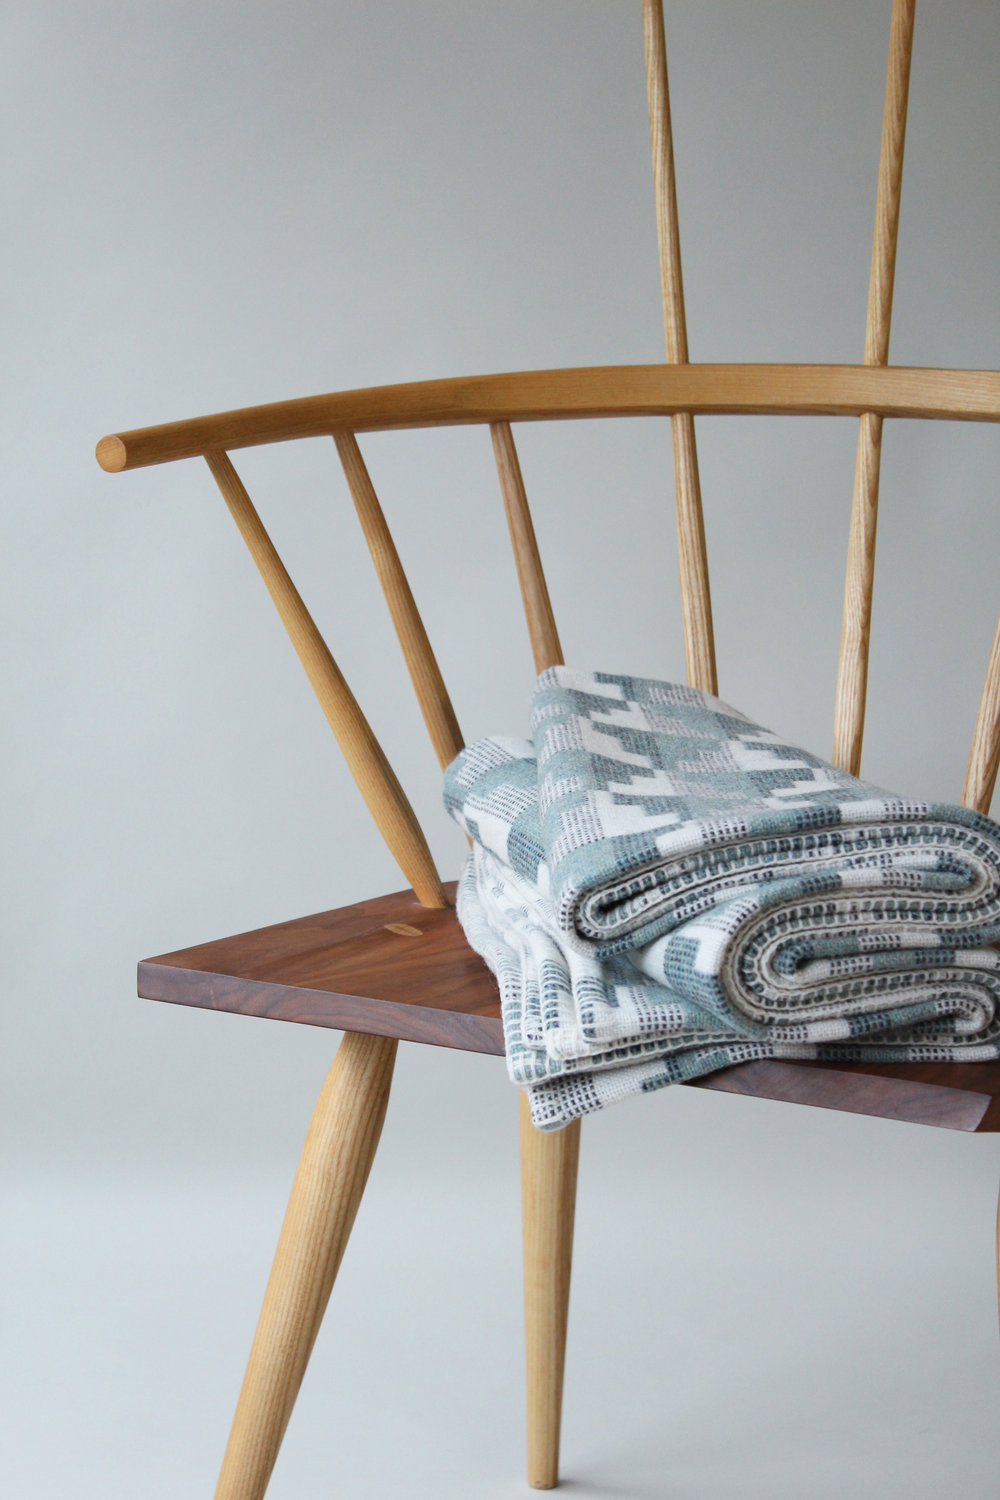 Eleanor_Pritchard_Northerly_Blanket_on_Kimble_Chair_by_Matthew_HIlton_for_De_la_Espada_.jpg